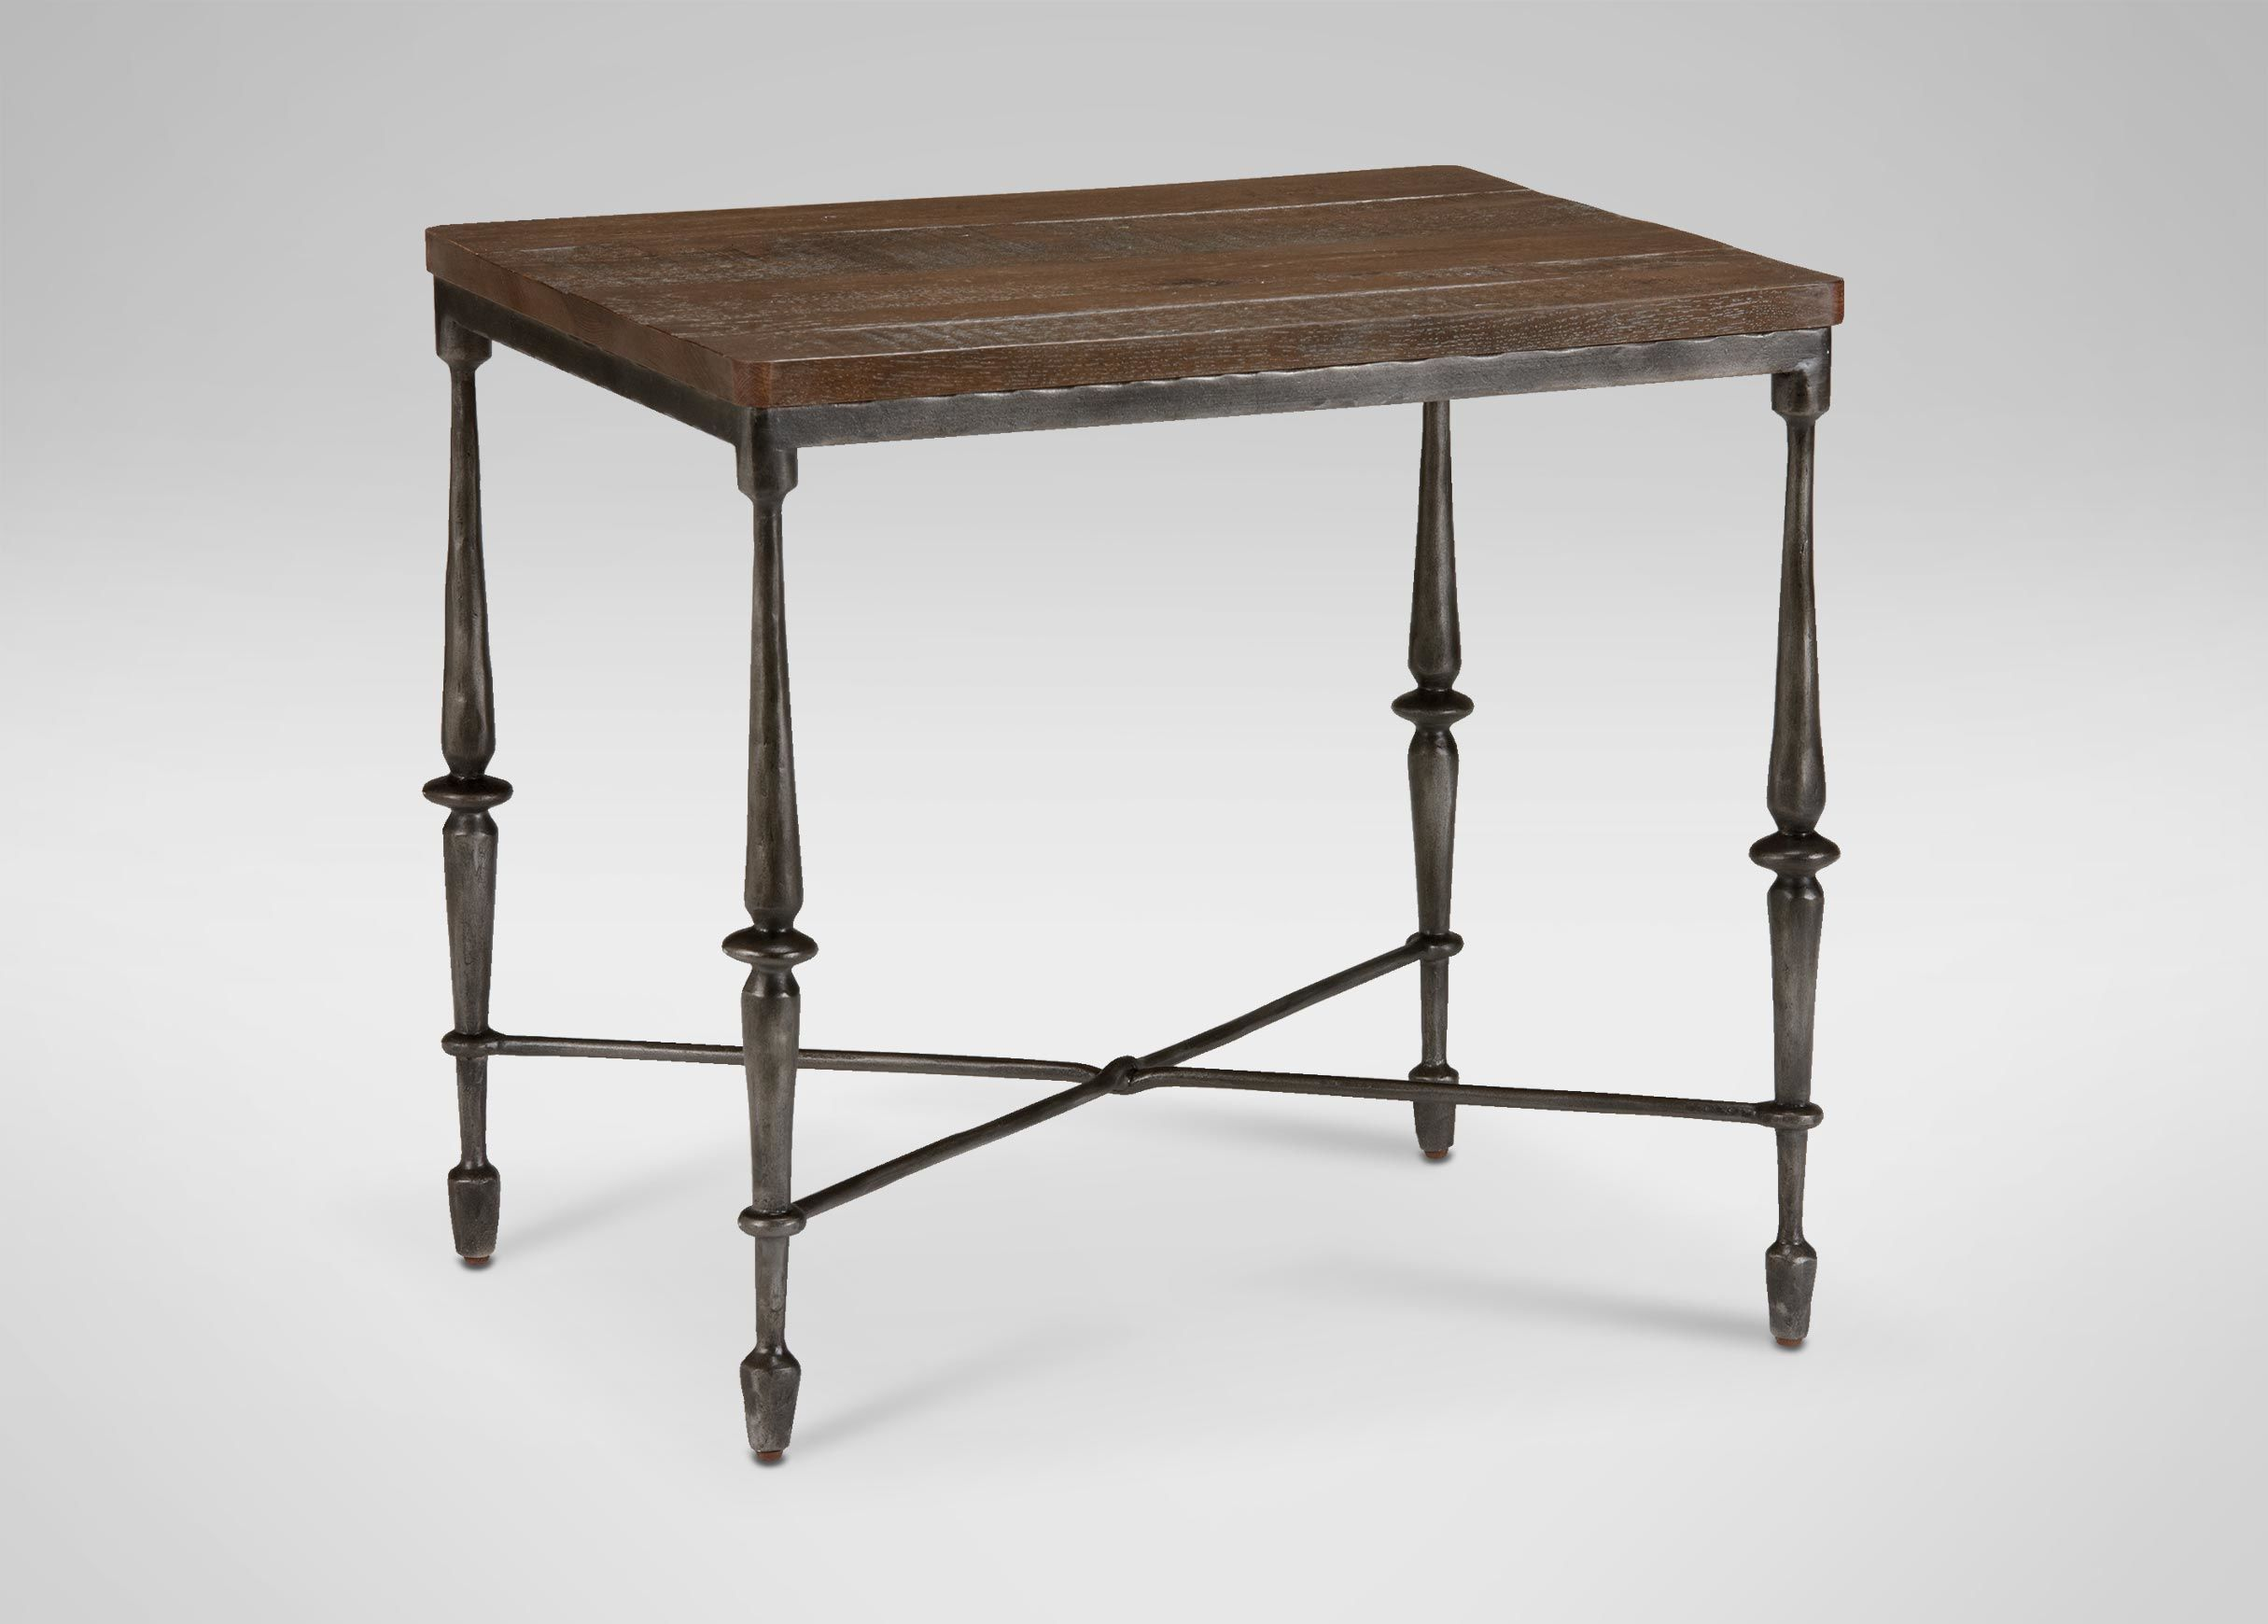 albee end table loft large gray threshold margate accent contemporary trestle dining piece counter height set cocktail tablecloth tall side with drawers grey green paint new home